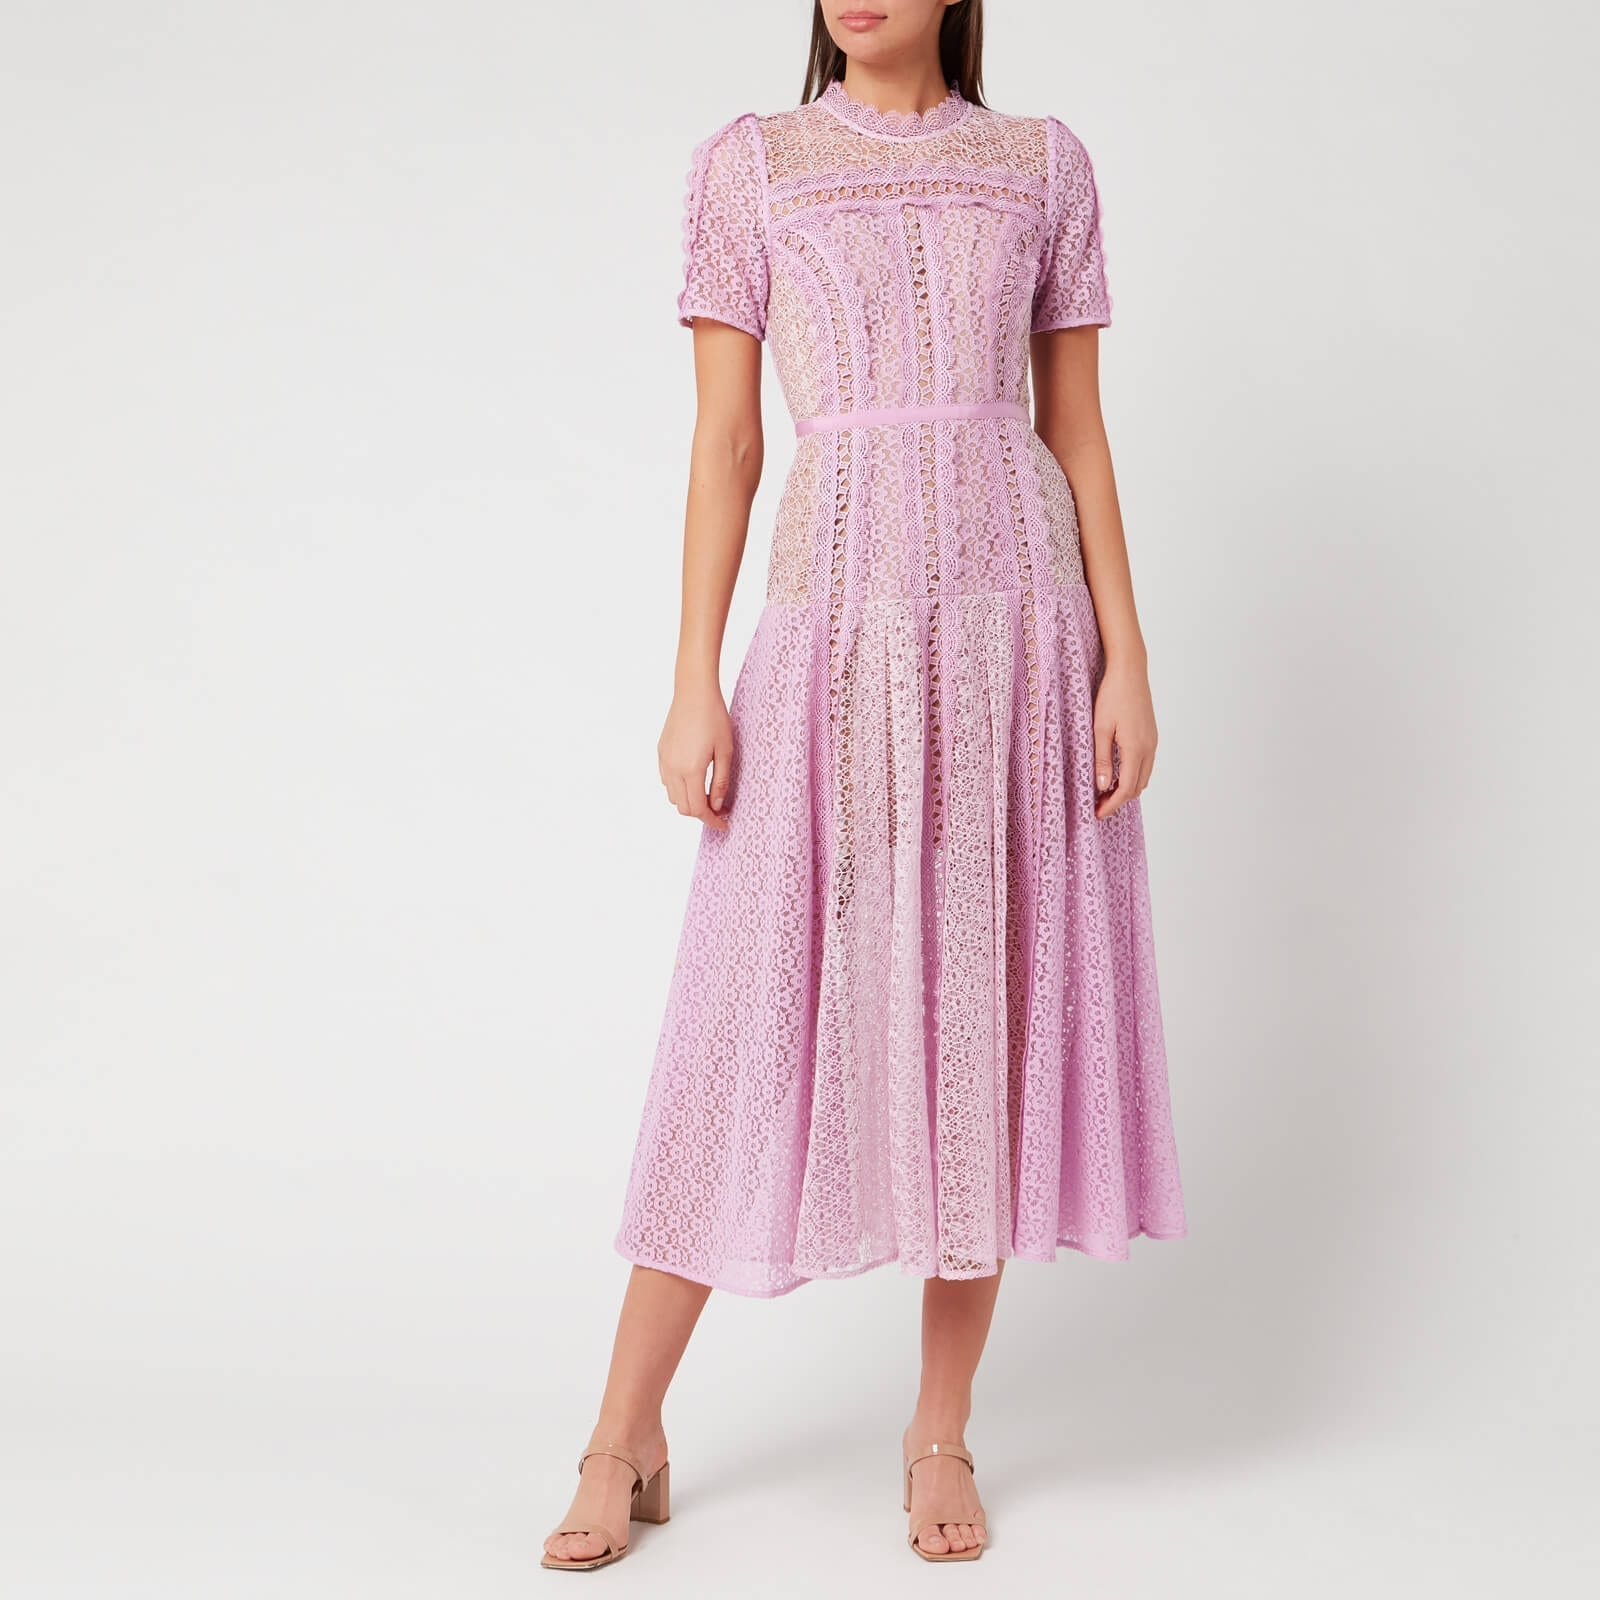 SELF-PORTRAIT Women's Lilac Lace Panel Midi Dress